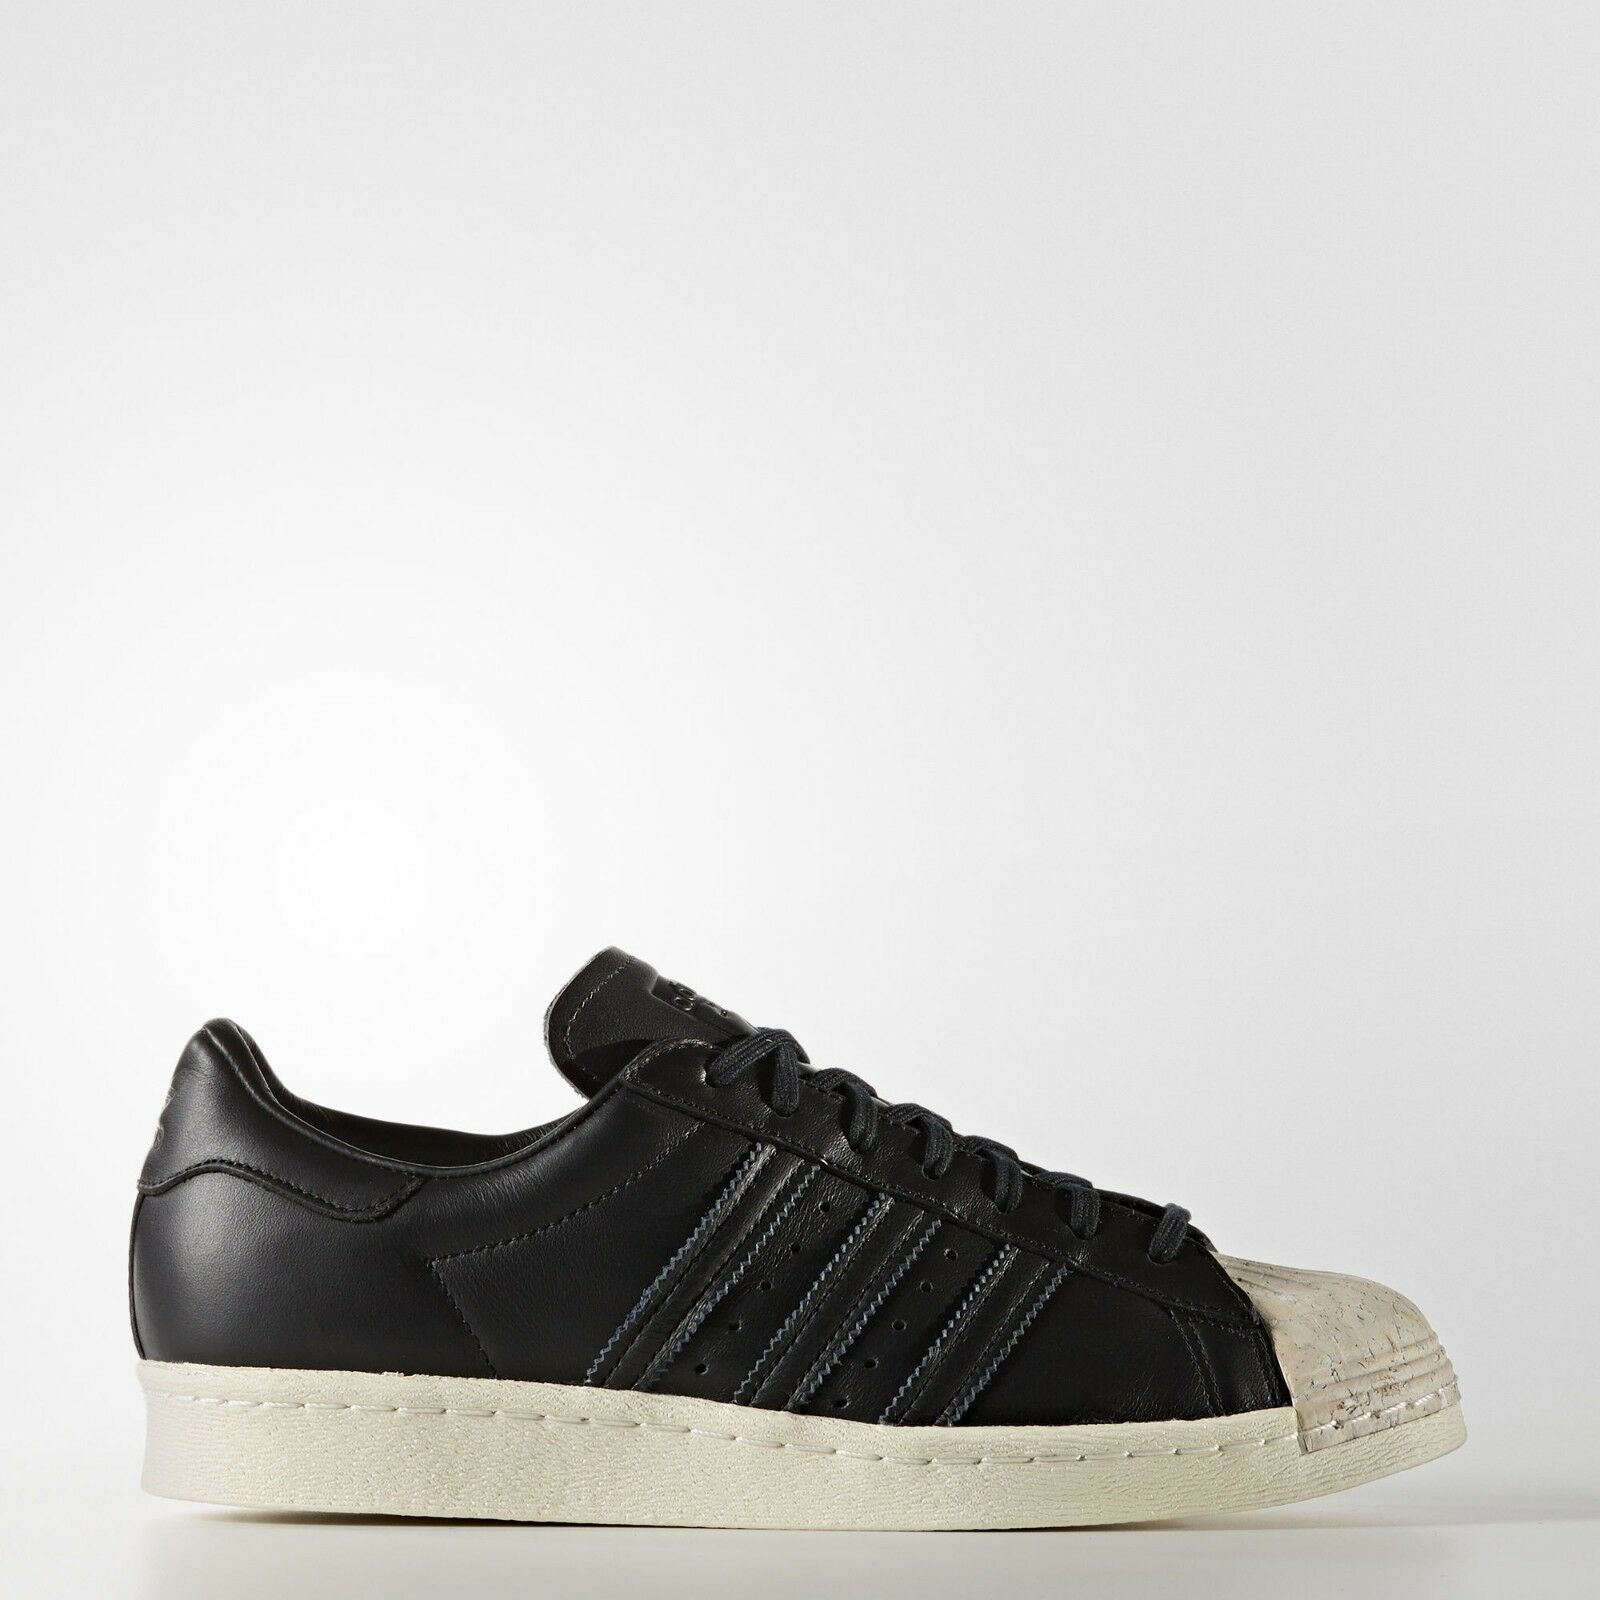 █ BRAND NEW IN BOX NEVER WORN adidas Superstar 80s Shoes Women's 7.5 █ Comfortable and good-looking